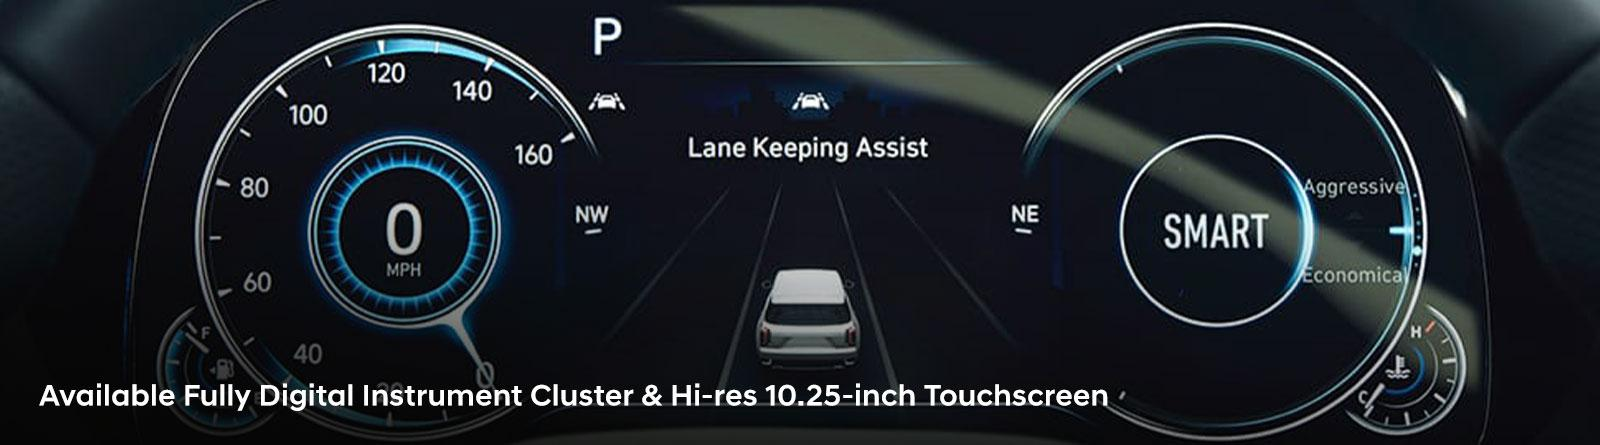 Hyundai Lane Keeping Assist